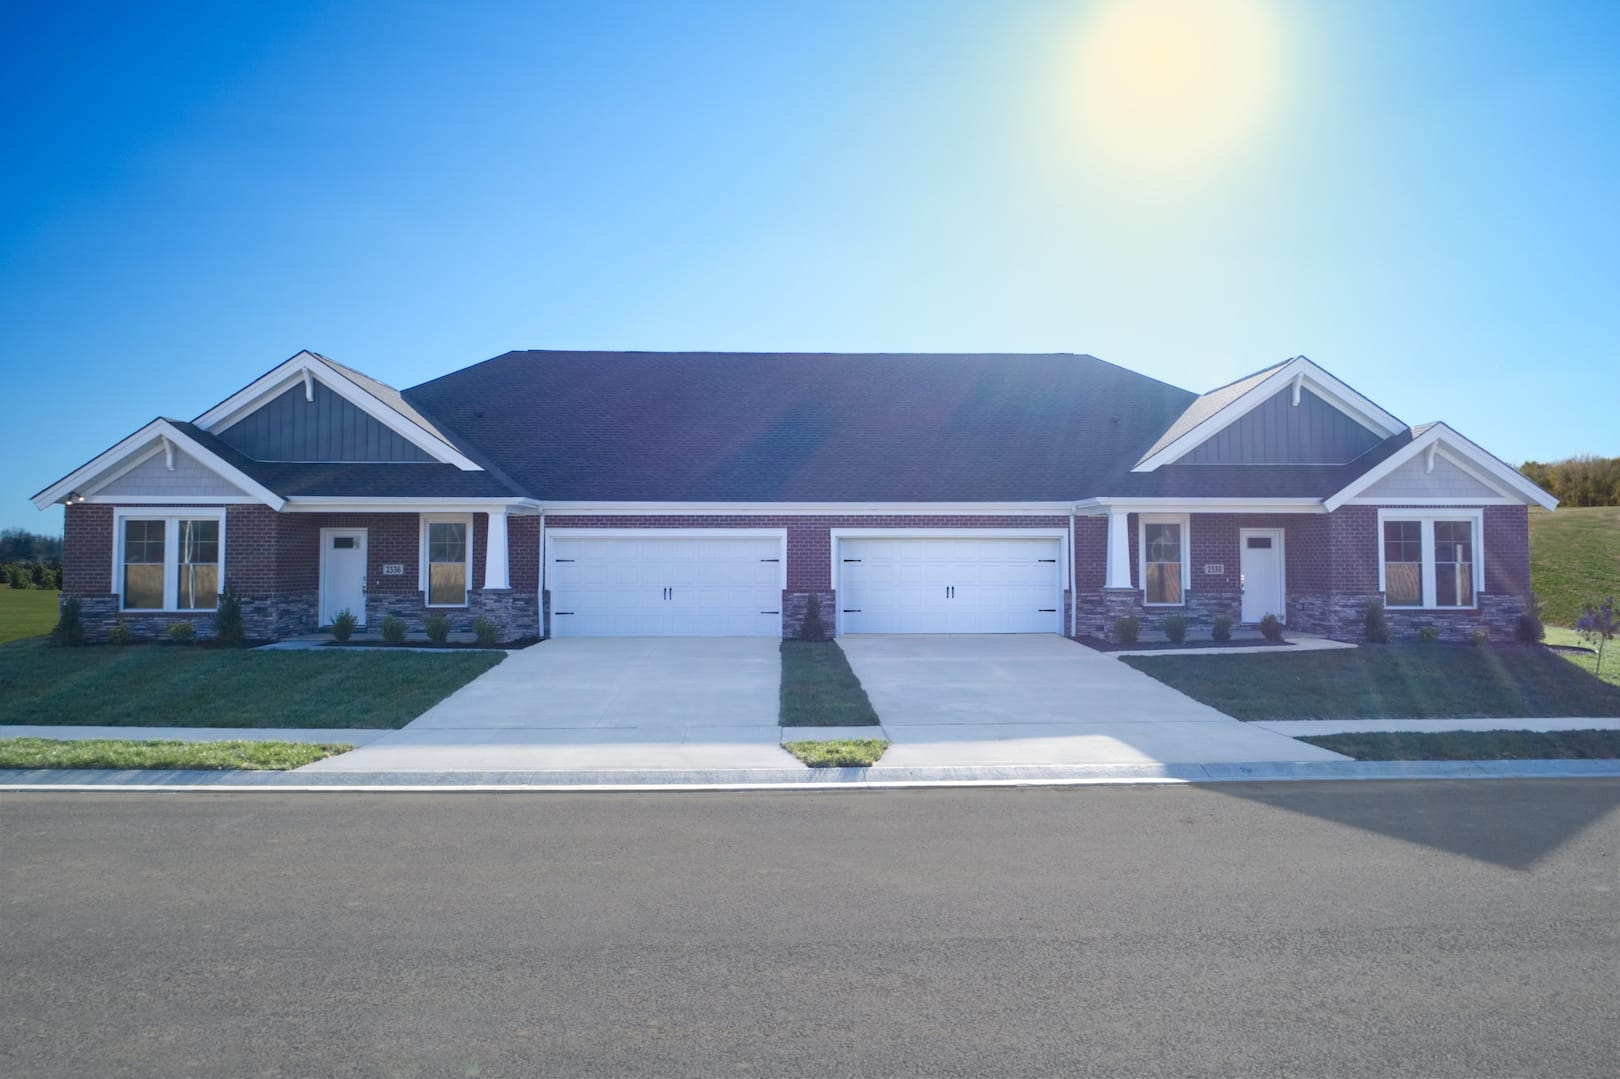 Fall Tour of Homes - The Acoustics at Bluegrass Commons | Mandolin | 2338 Watson Circle, 42301